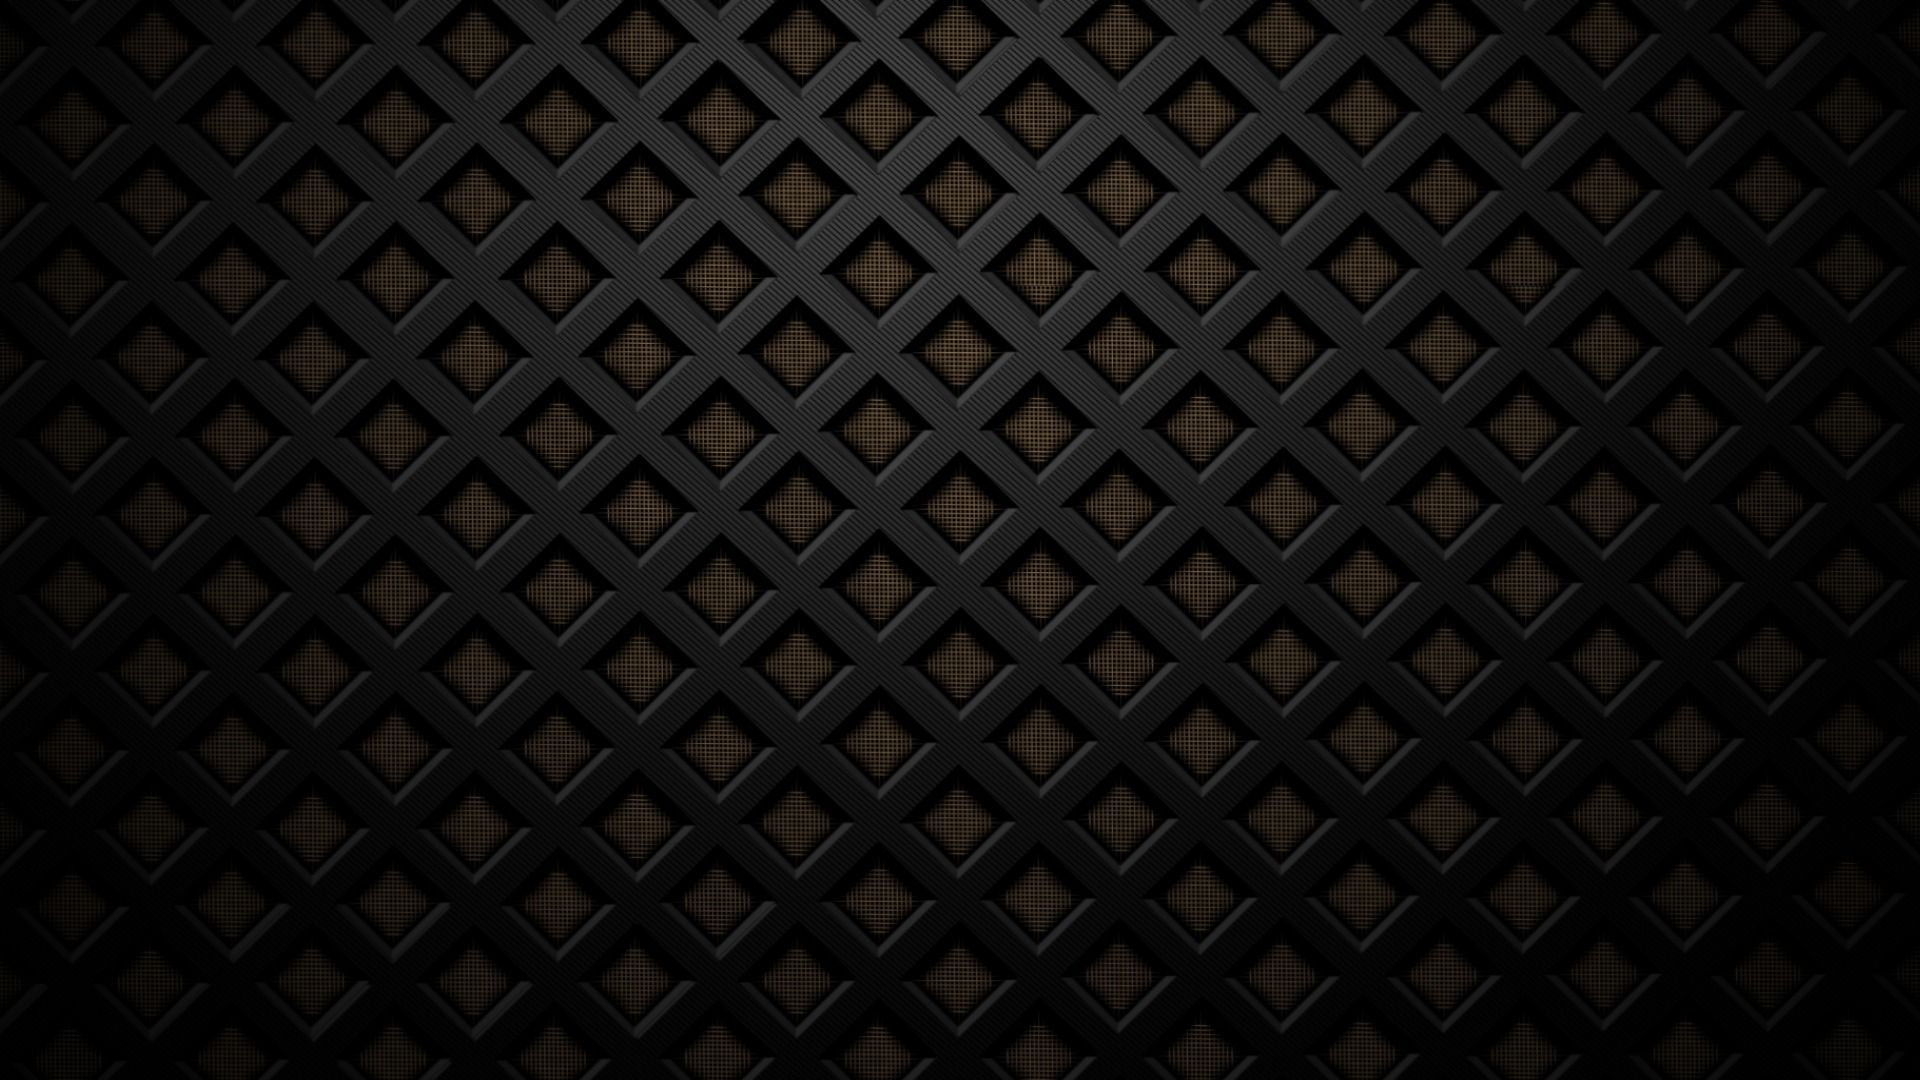 Black Texture Wallpaper Pc Wallpaperlepi Black Textured Wallpaper Dark Wallpaper Abstract Wallpaper